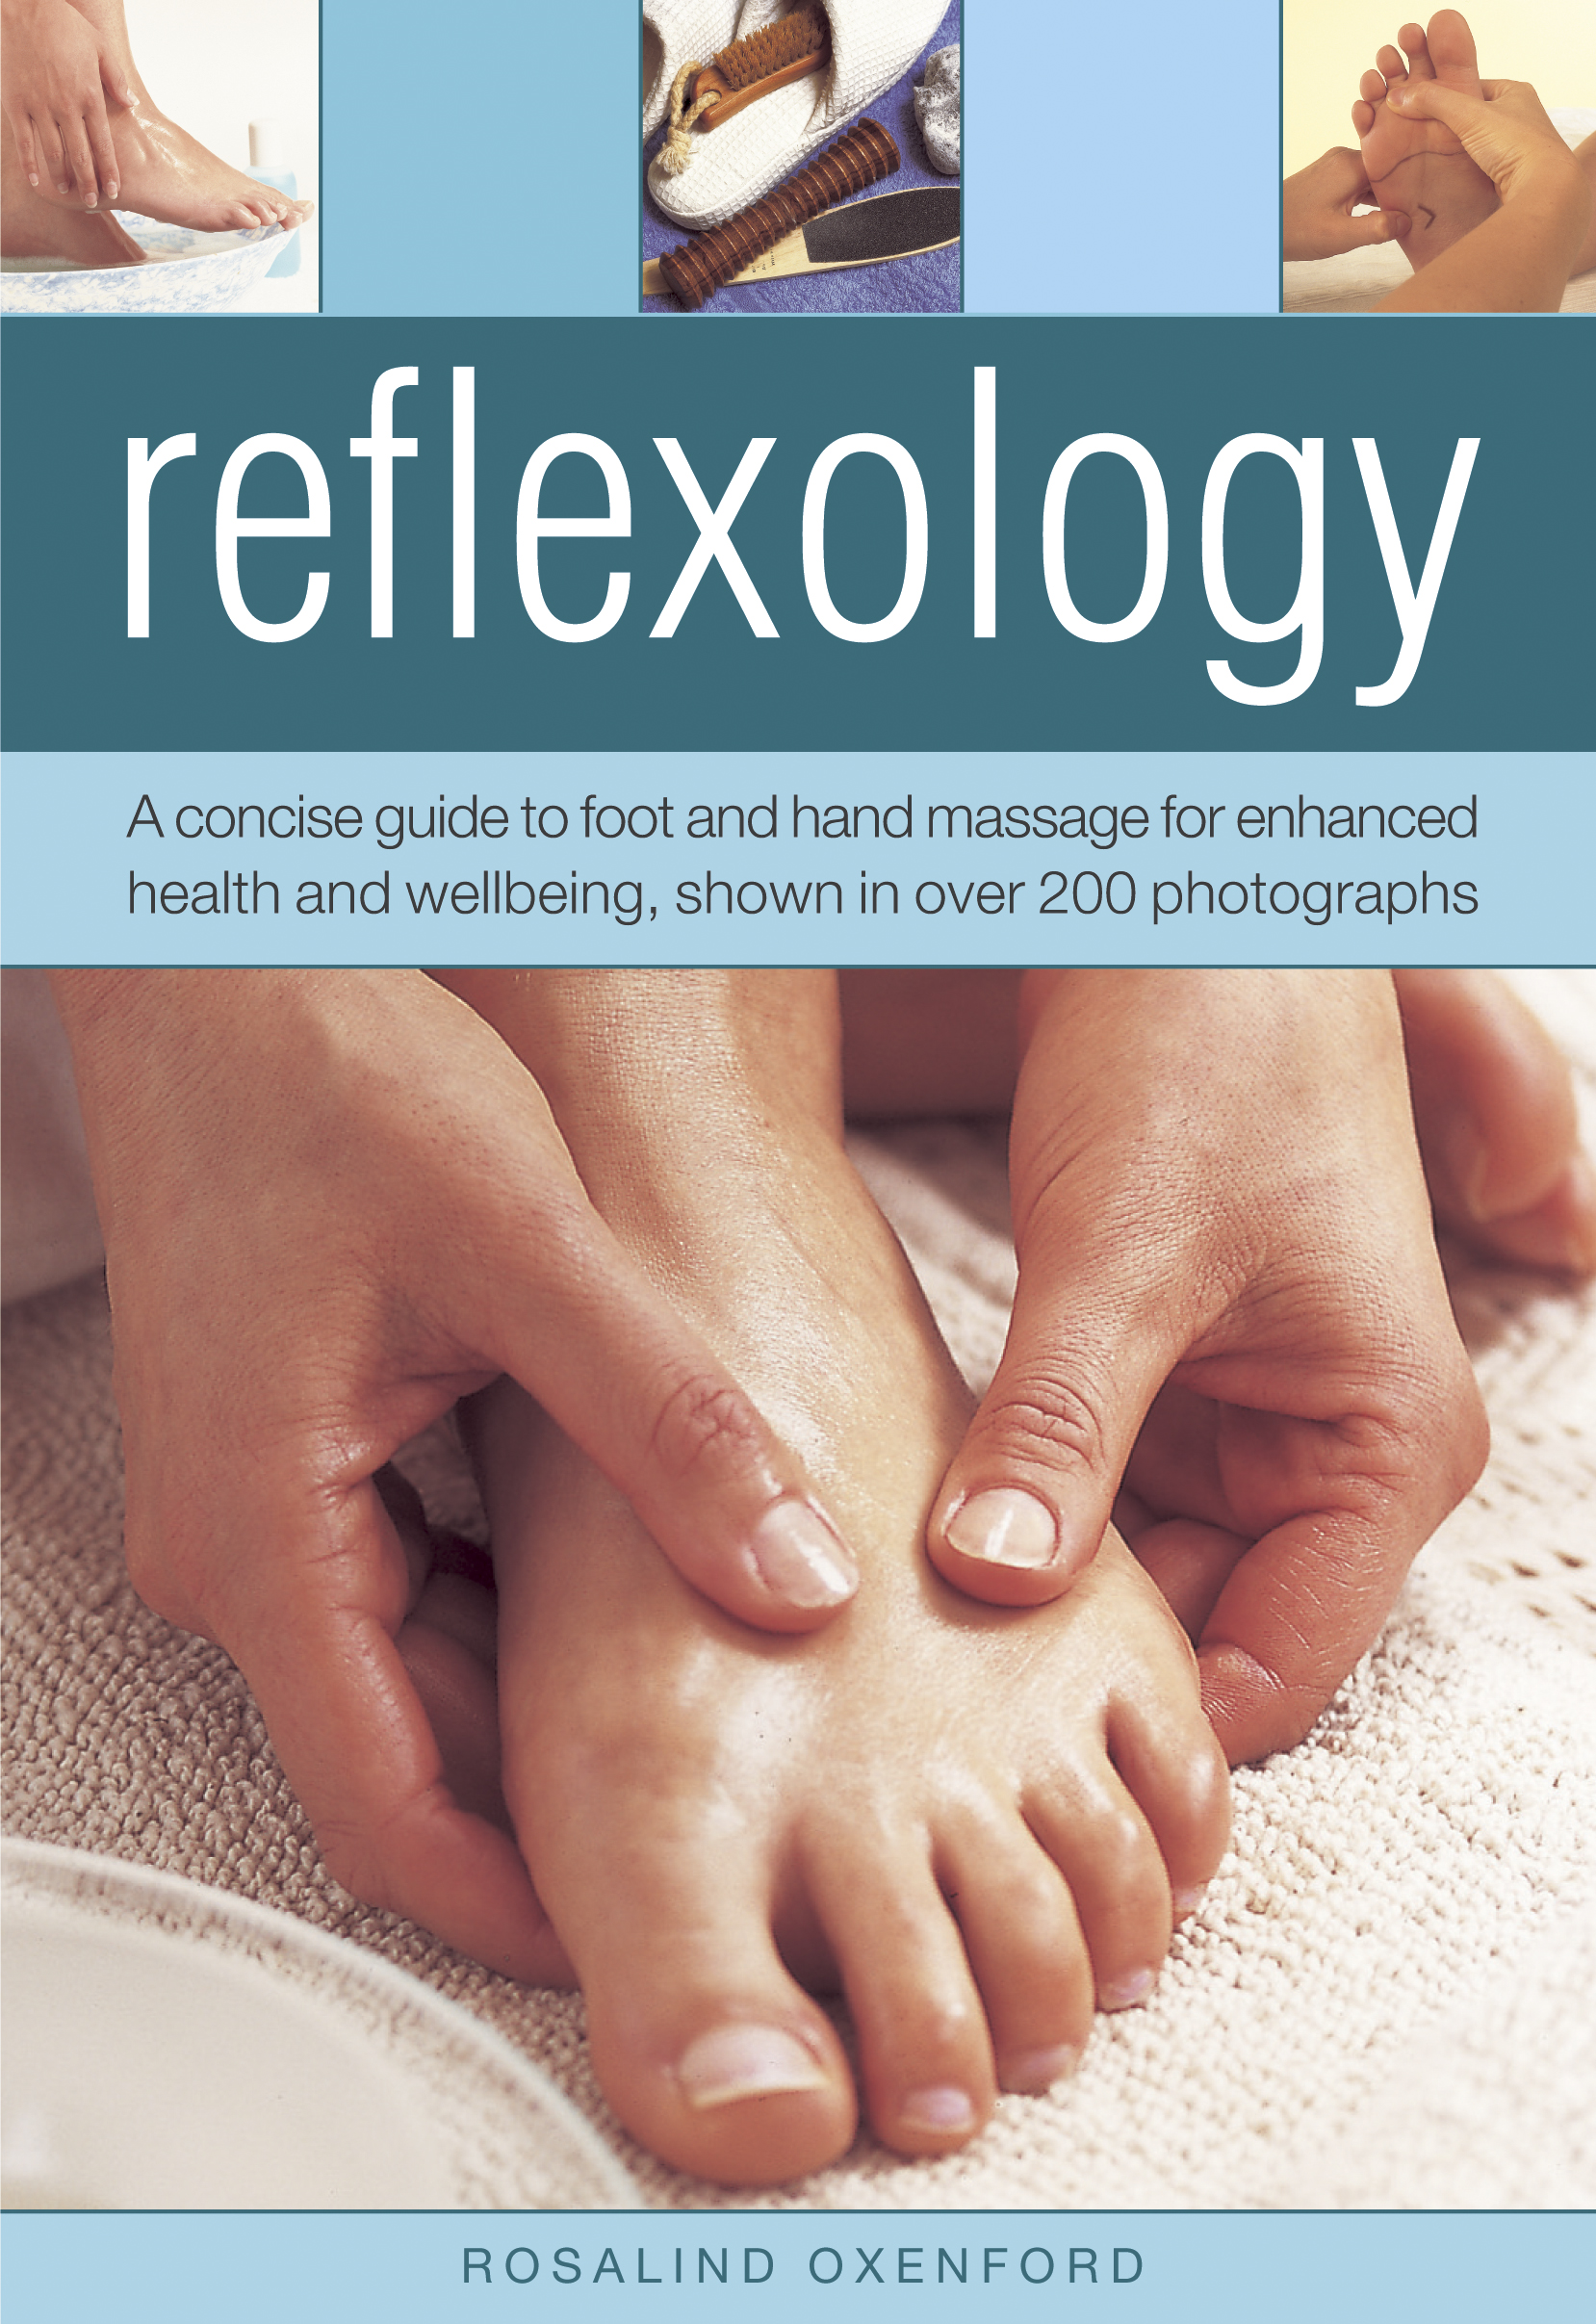 Reflexology A Concise Guide to Foot and Hand Massage For Enhanced Health and Wellbeing,  Shown in Over 200 Photographs